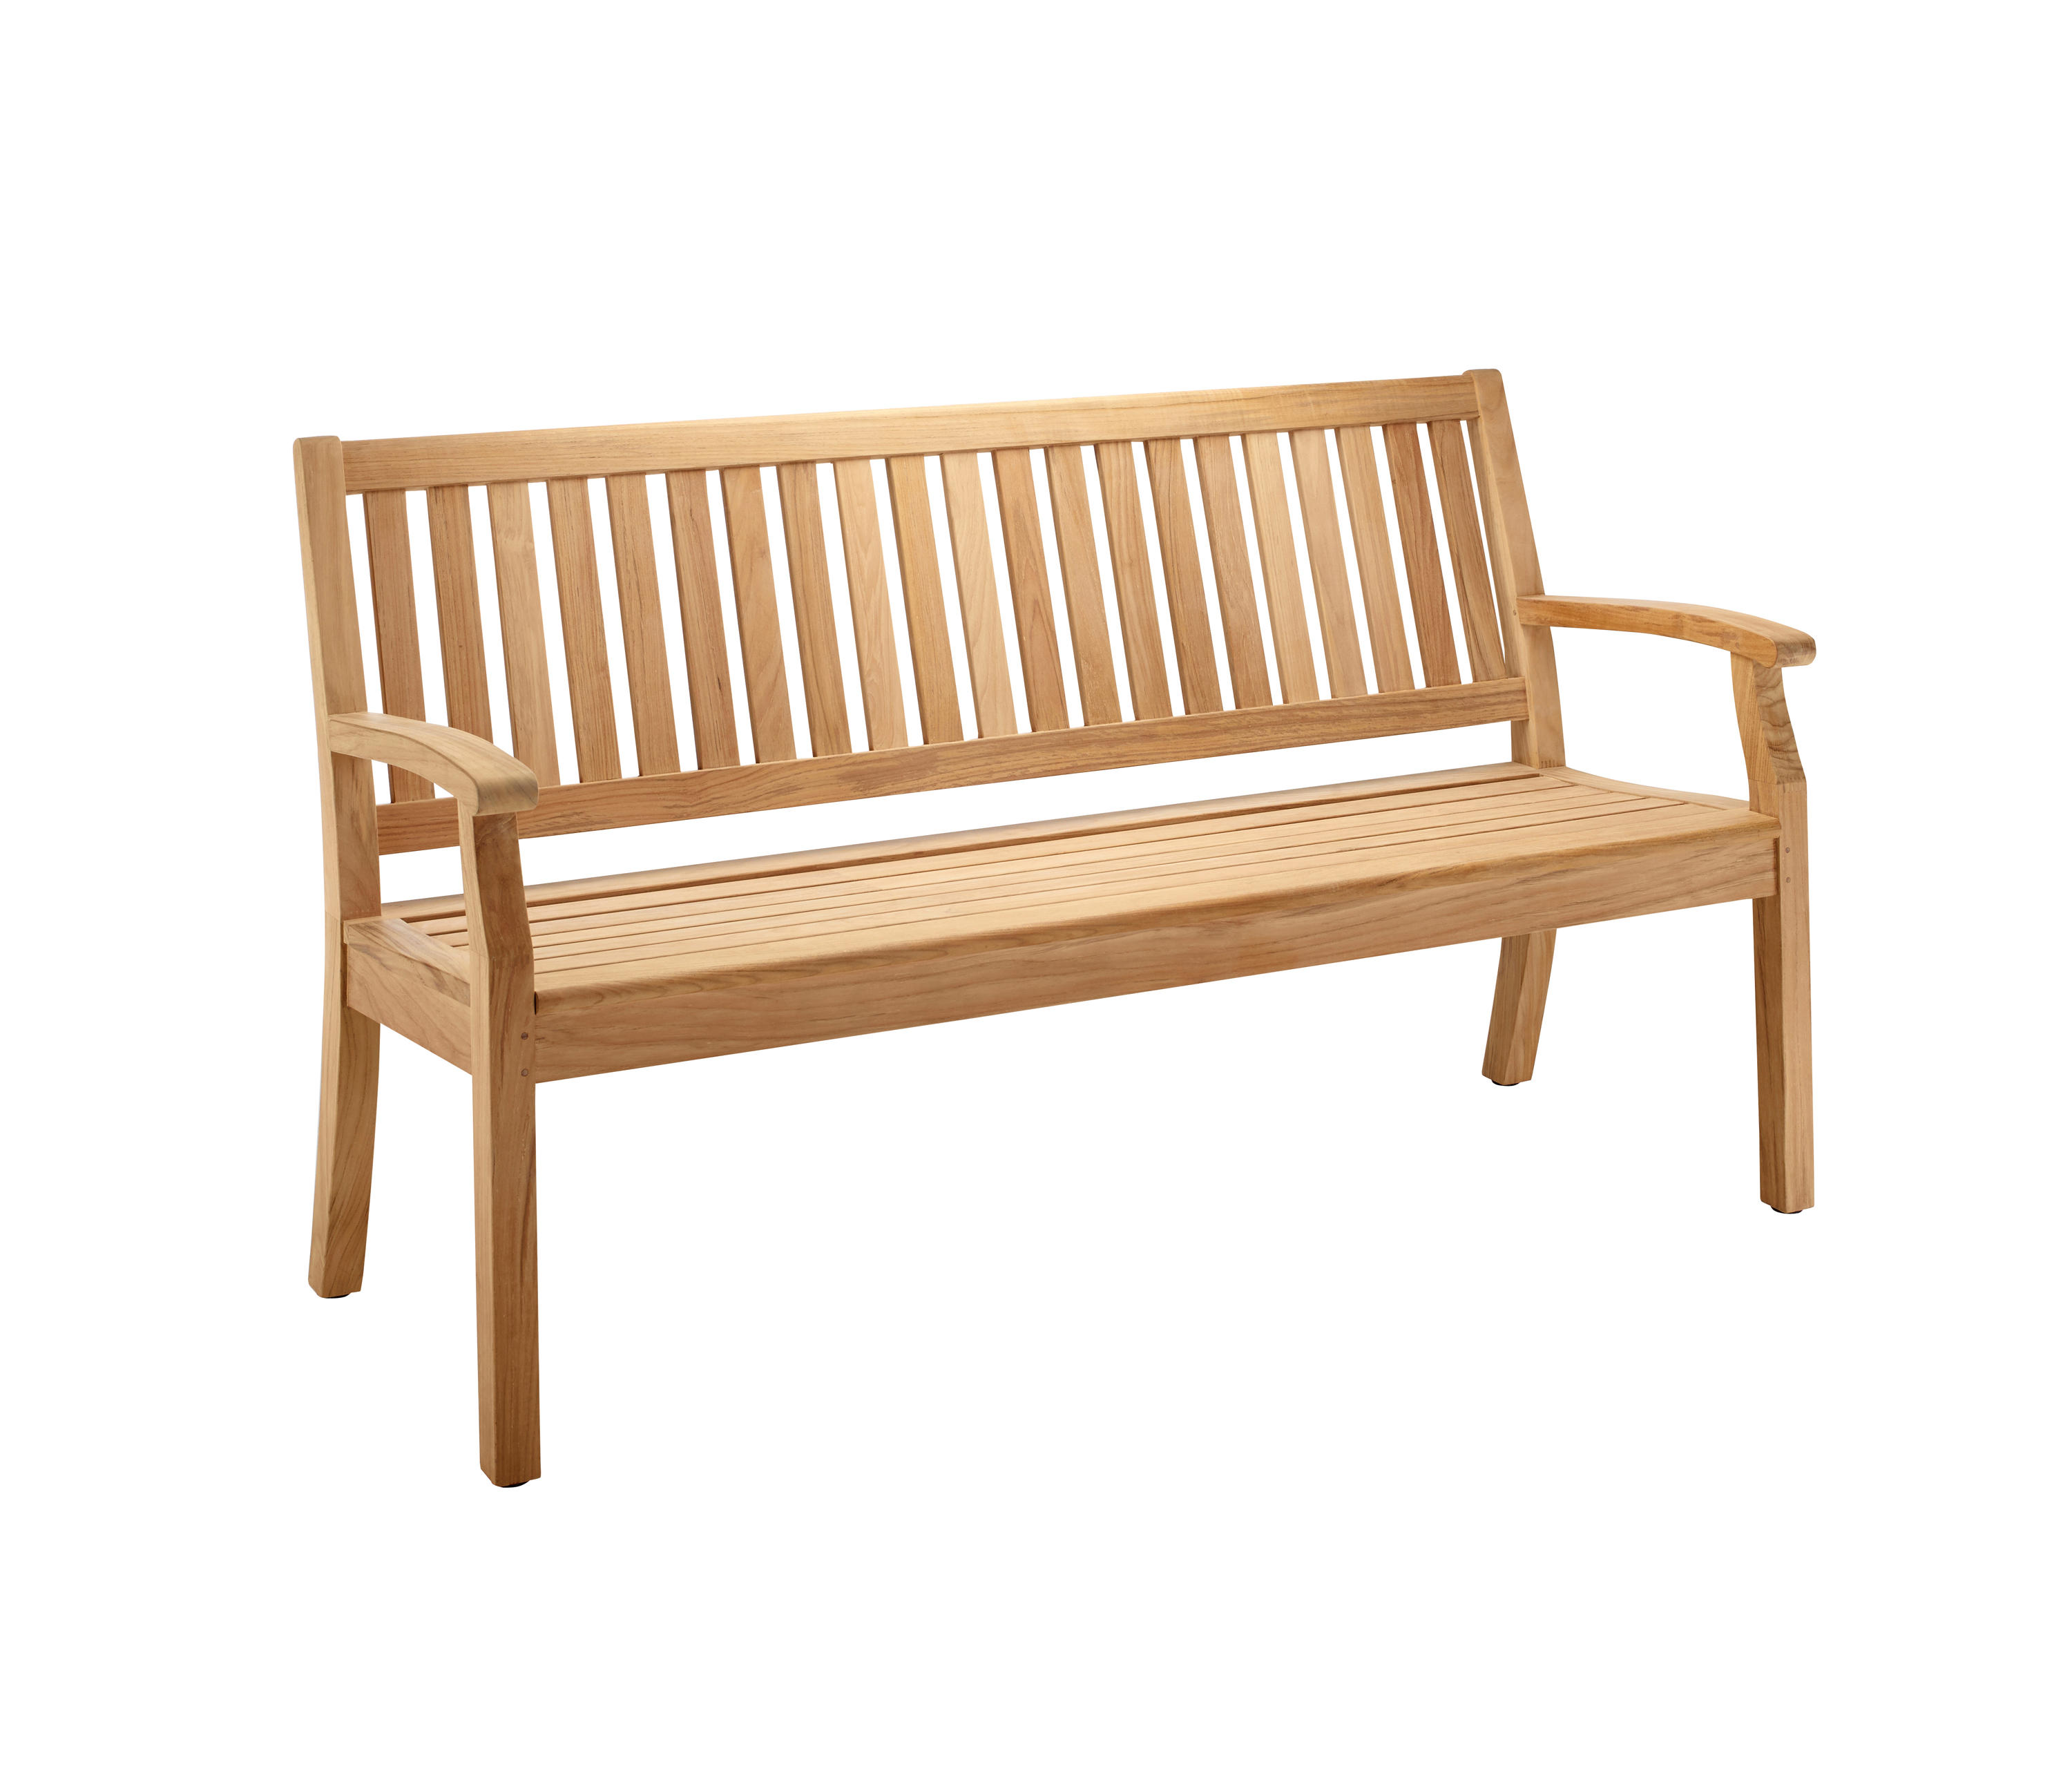 Windsor Bench With Arm And Back Medium Garden Benches From Solpuri Architonic